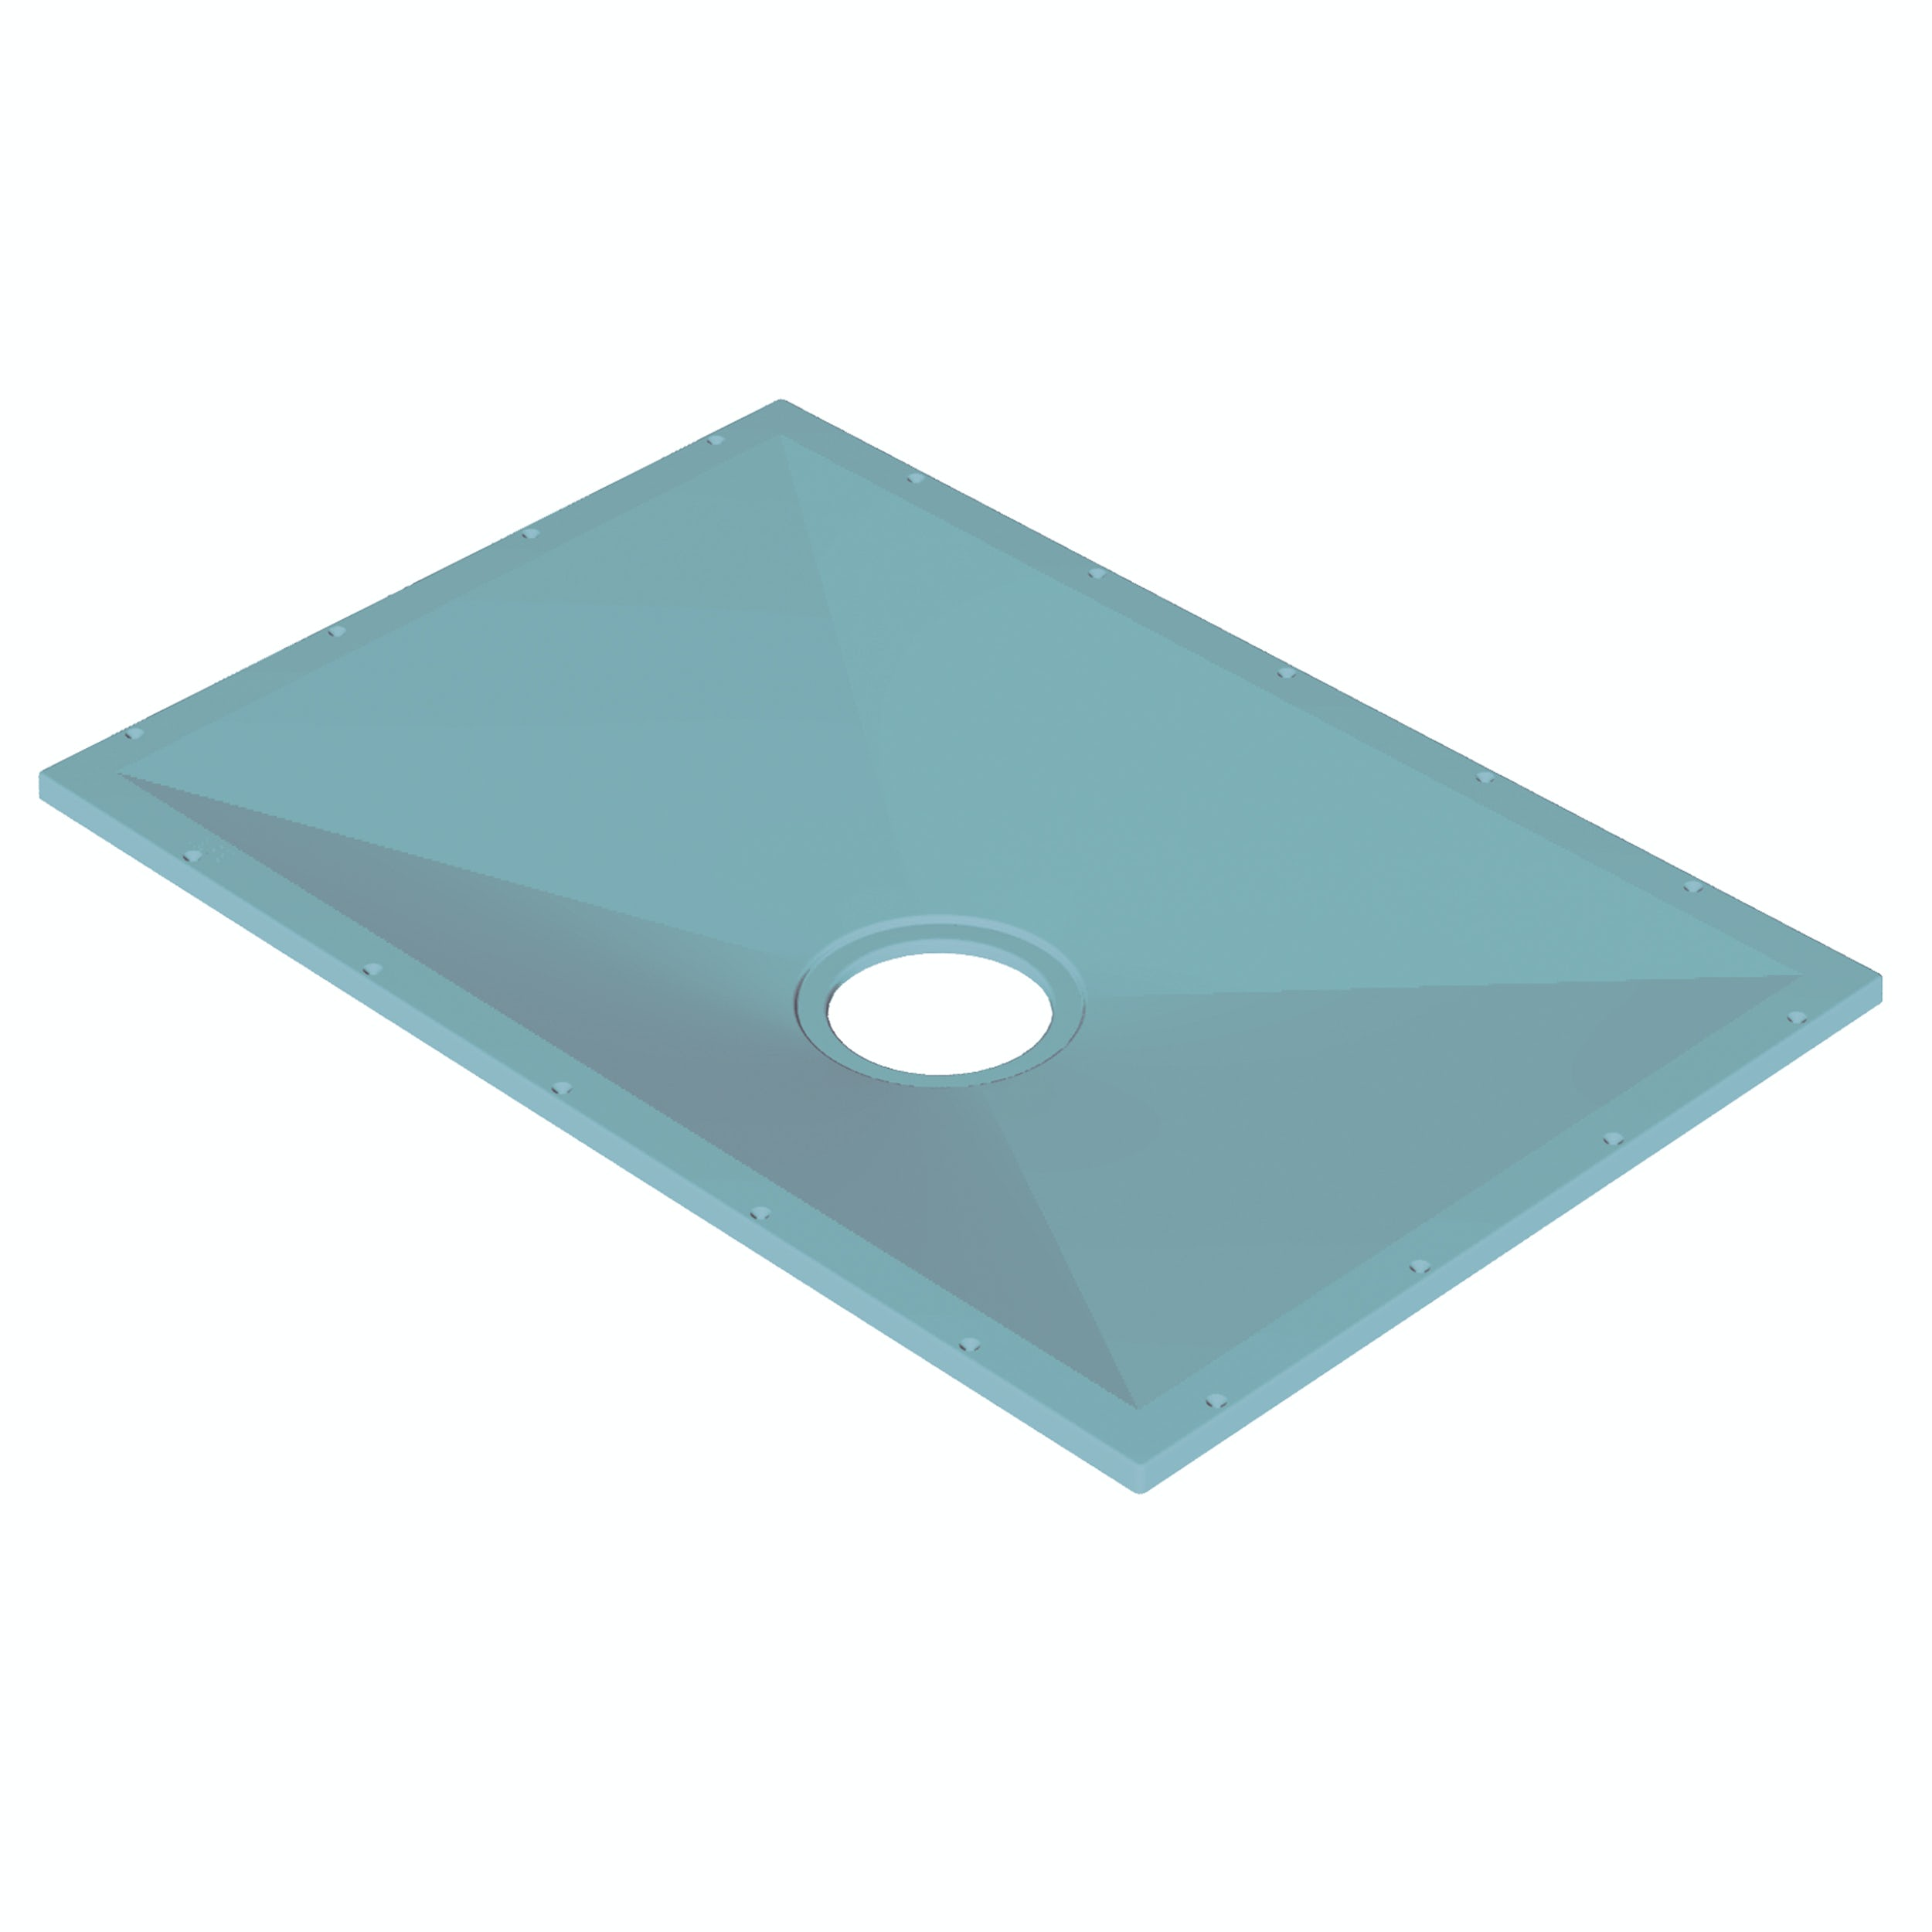 AKW Tuff Form rectangular wet room tray former - Sold by Victoria Plum